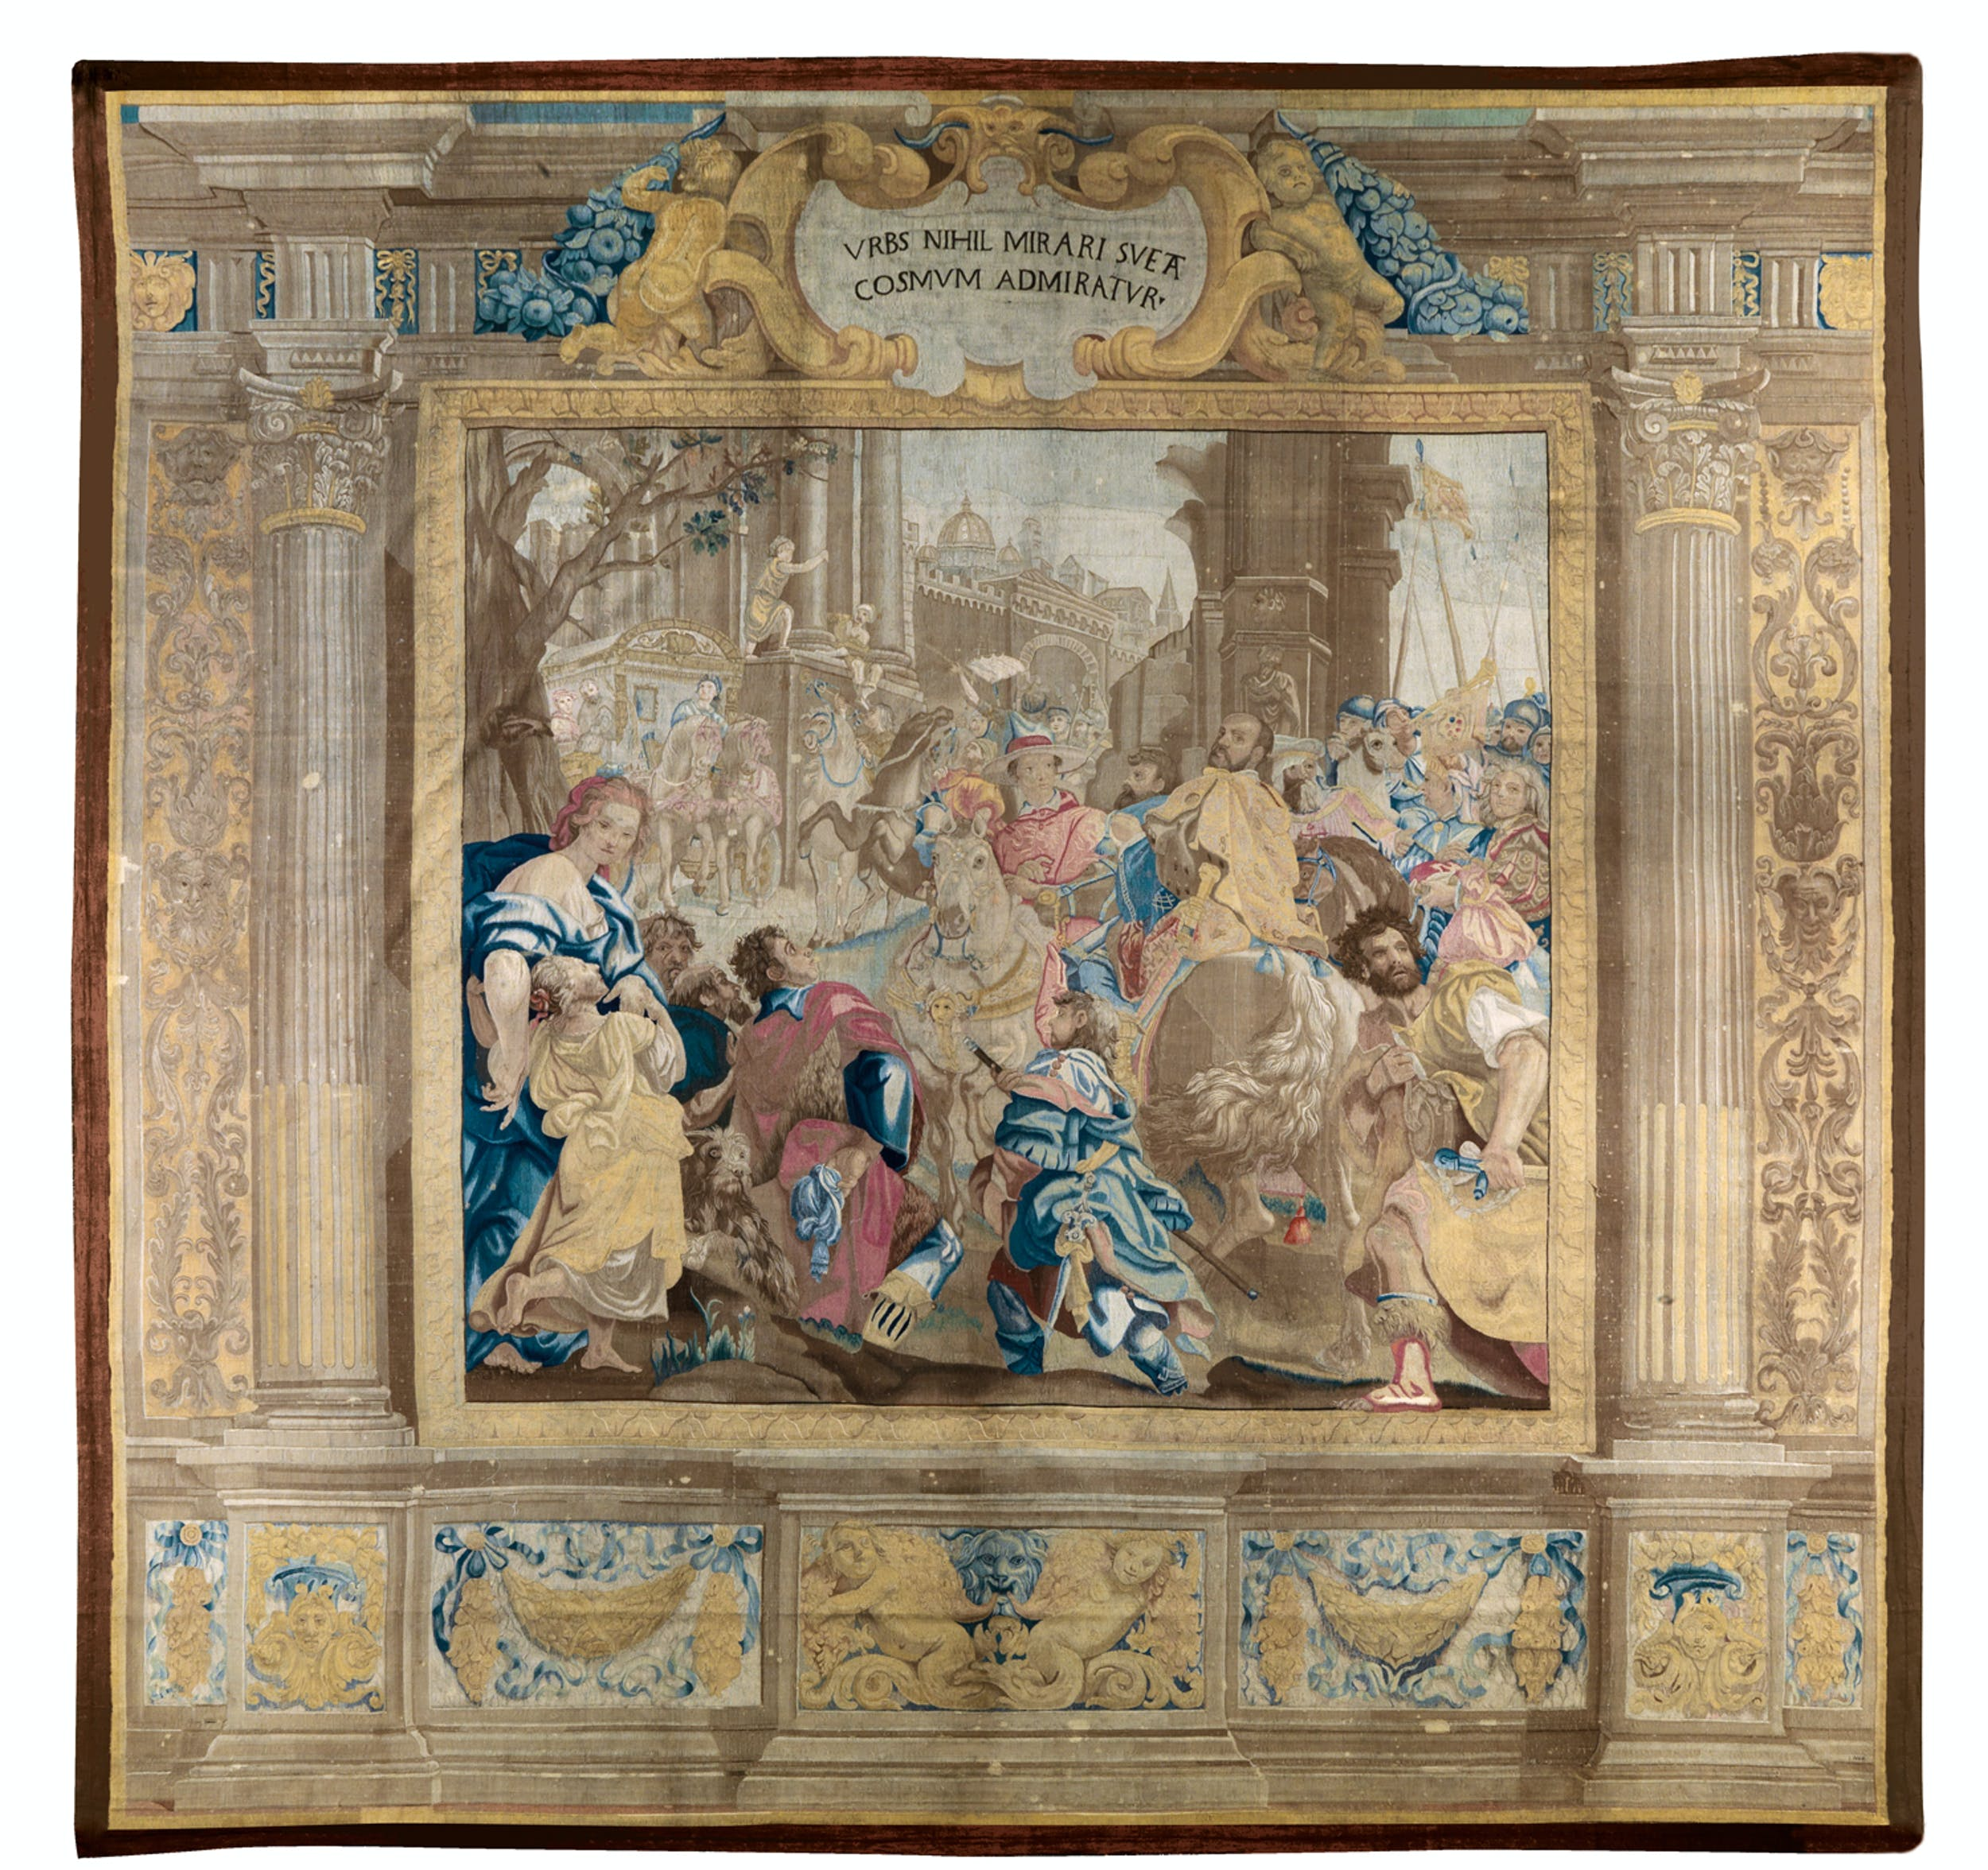 Cosimo Ulivelli, disegnatore Bernardino van Asselt Visita di Cosimo I a Roma insieme al figlio cardinal Giovanni 1659-1662 lana e seta; cm 518,5 x 551 Museo degli Arazzi, Gallerie degli Uffizi, Firenze | Cosimo Ulivelli, drawing and cartoon Bernardino van Asselt Cosimo I visits Rome with his son Cardinal Giovanni 1659-1662 wool and silk; 518,5 x 551 cm. Museo degli Arazzi, Gallerie degli Uffizi, Florence